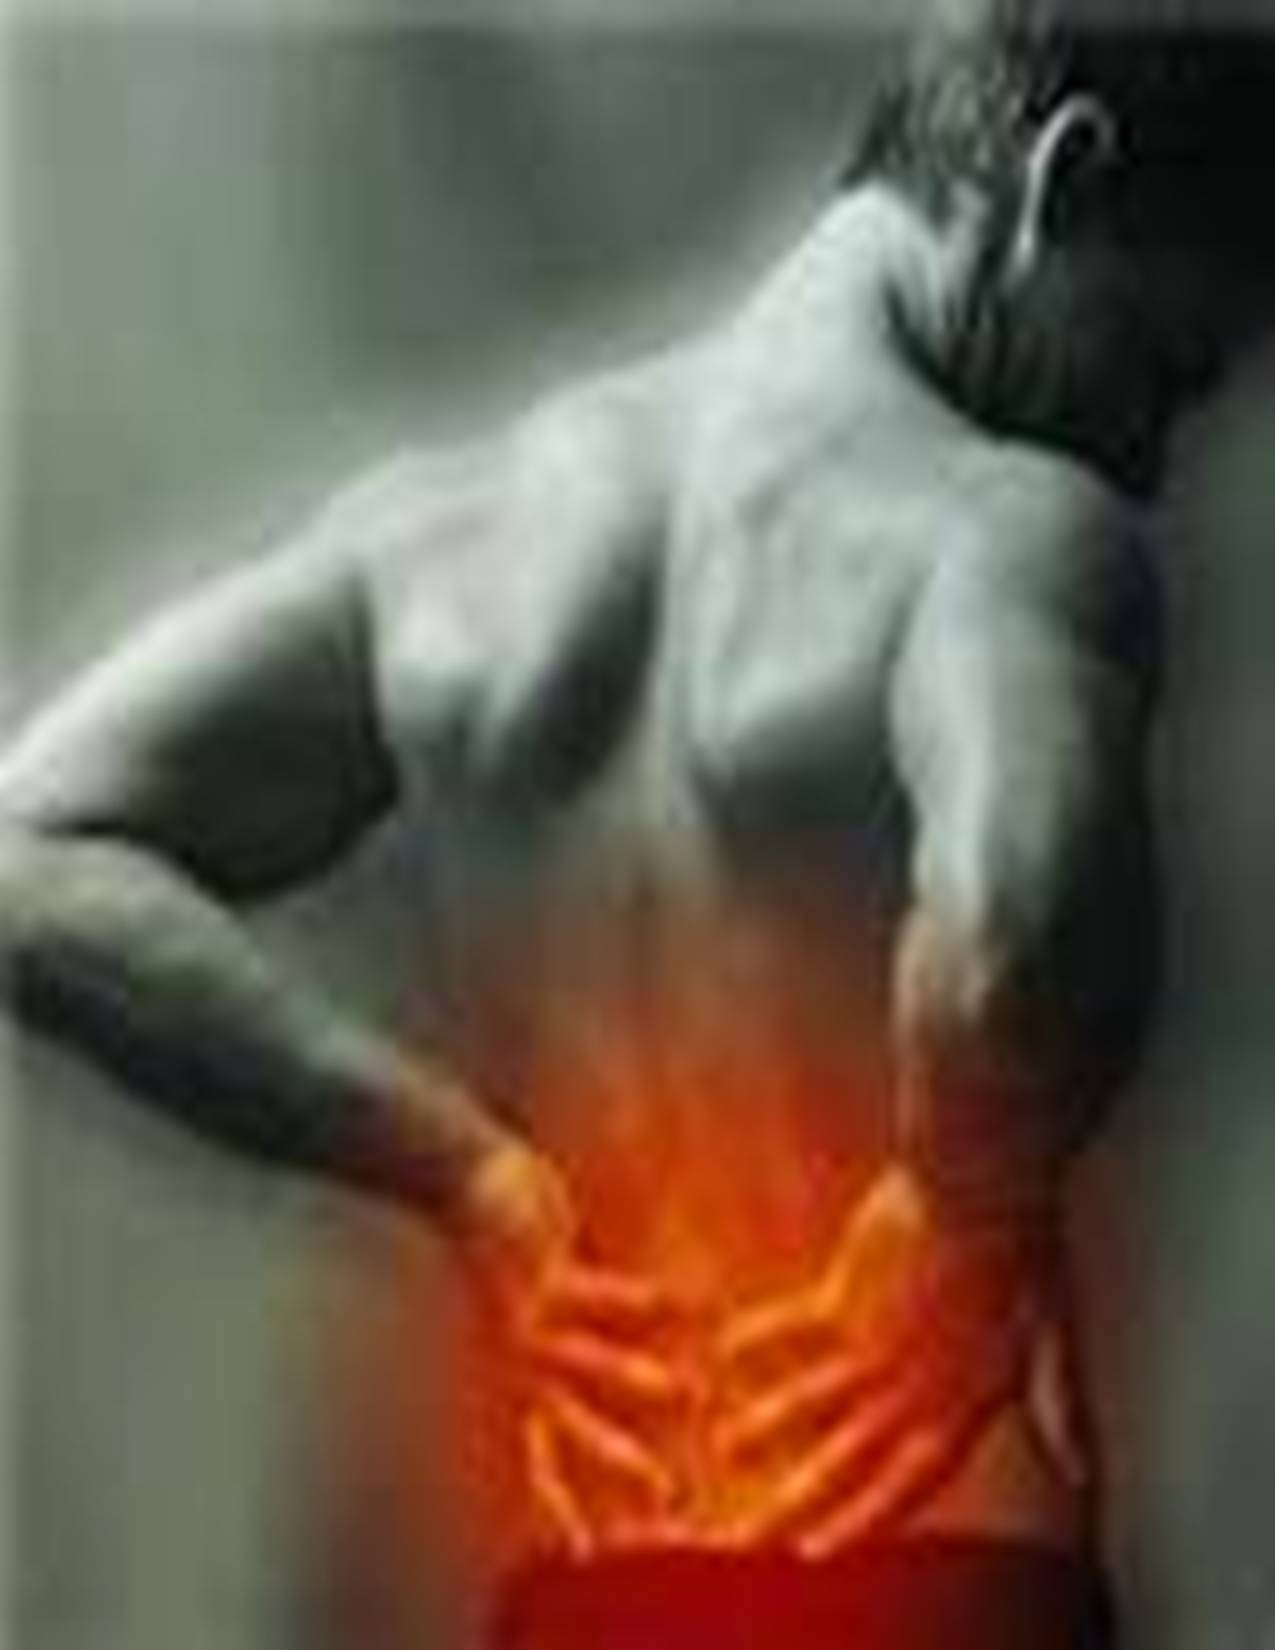 low back pain Read about causes of low back pain and learn about the medications used in the treatment of lower back pain associated symptoms include numbness, pins and needles sensation, and sciatica.